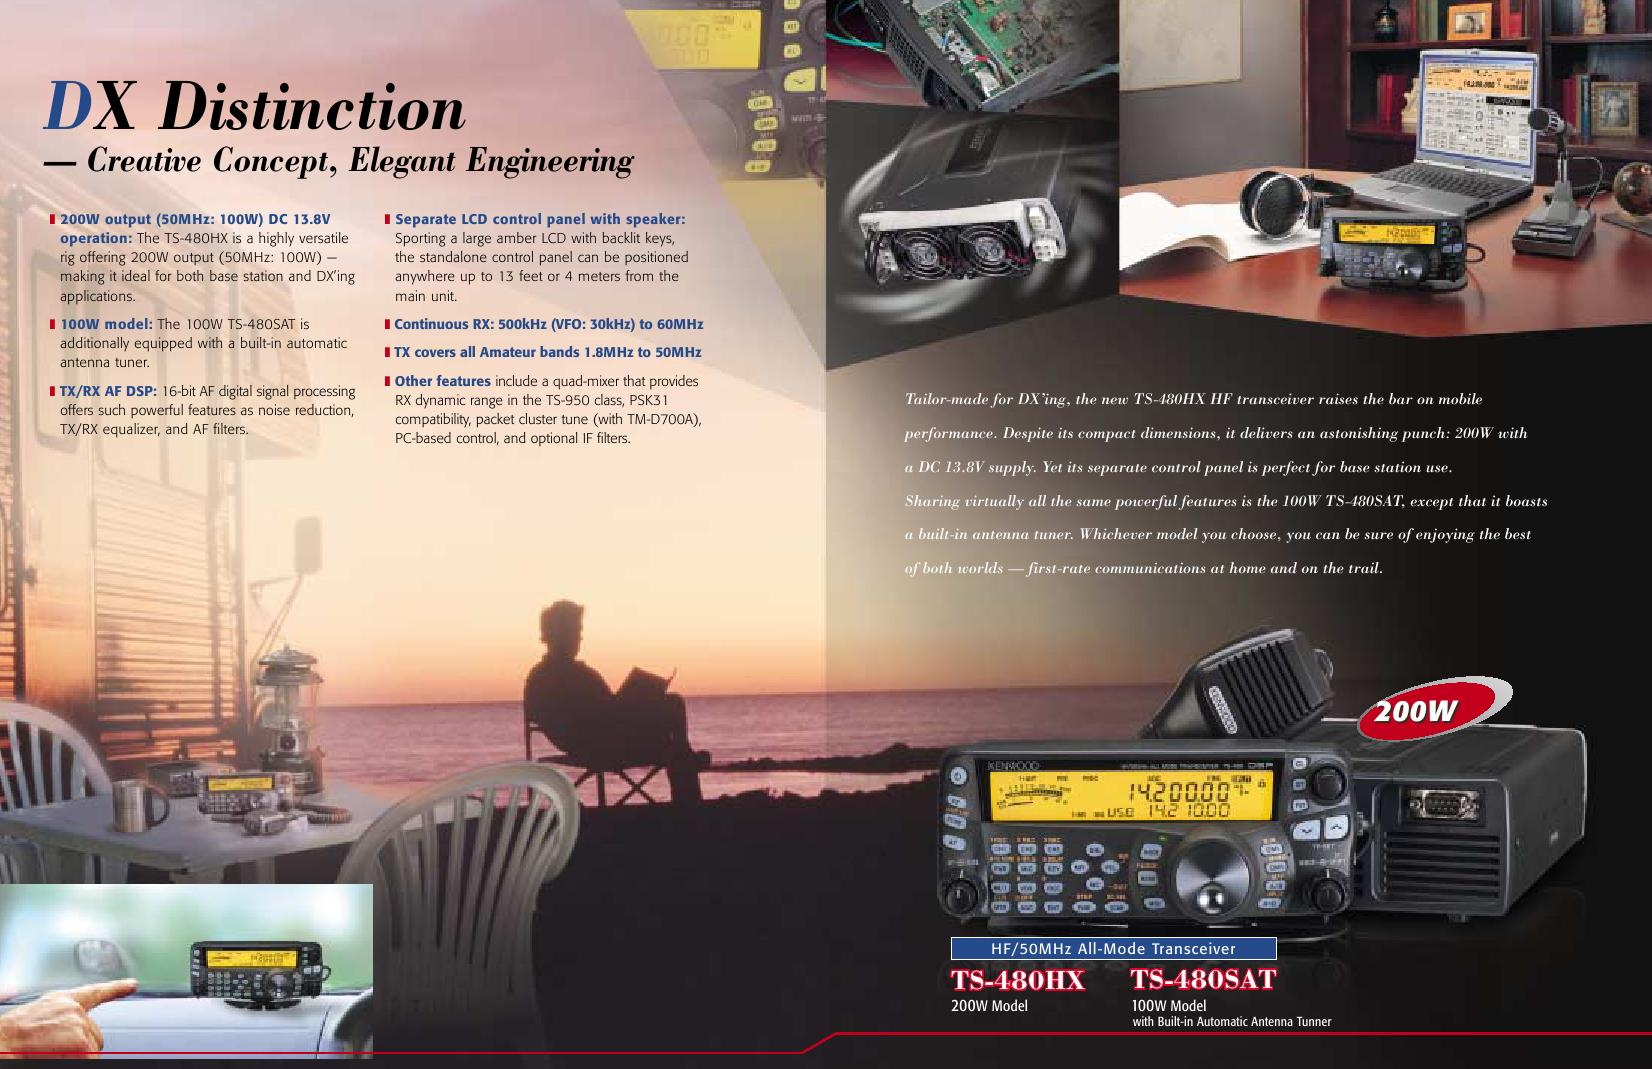 TS-480HX/TS-480SAT HF/50MHz All-Mode Transceiver by Kenwood